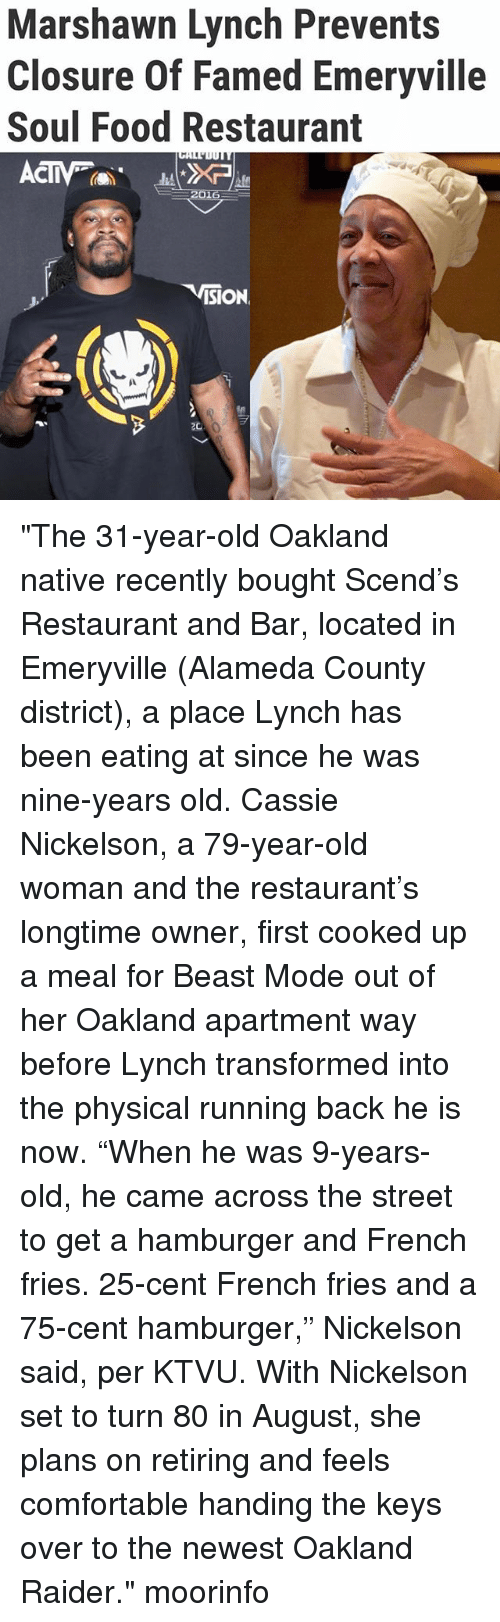 """Comfortable, Food, and Marshawn Lynch: Marshawn Lynch Prevents  Closure Of Famed Emeryville  Soul Food Restaurant  CIV  ISION """"The 31-year-old Oakland native recently bought Scend's Restaurant and Bar, located in Emeryville (Alameda County district), a place Lynch has been eating at since he was nine-years old. Cassie Nickelson, a 79-year-old woman and the restaurant's longtime owner, first cooked up a meal for Beast Mode out of her Oakland apartment way before Lynch transformed into the physical running back he is now. """"When he was 9-years-old, he came across the street to get a hamburger and French fries. 25-cent French fries and a 75-cent hamburger,"""" Nickelson said, per KTVU. With Nickelson set to turn 80 in August, she plans on retiring and feels comfortable handing the keys over to the newest Oakland Raider."""" moorinfo"""